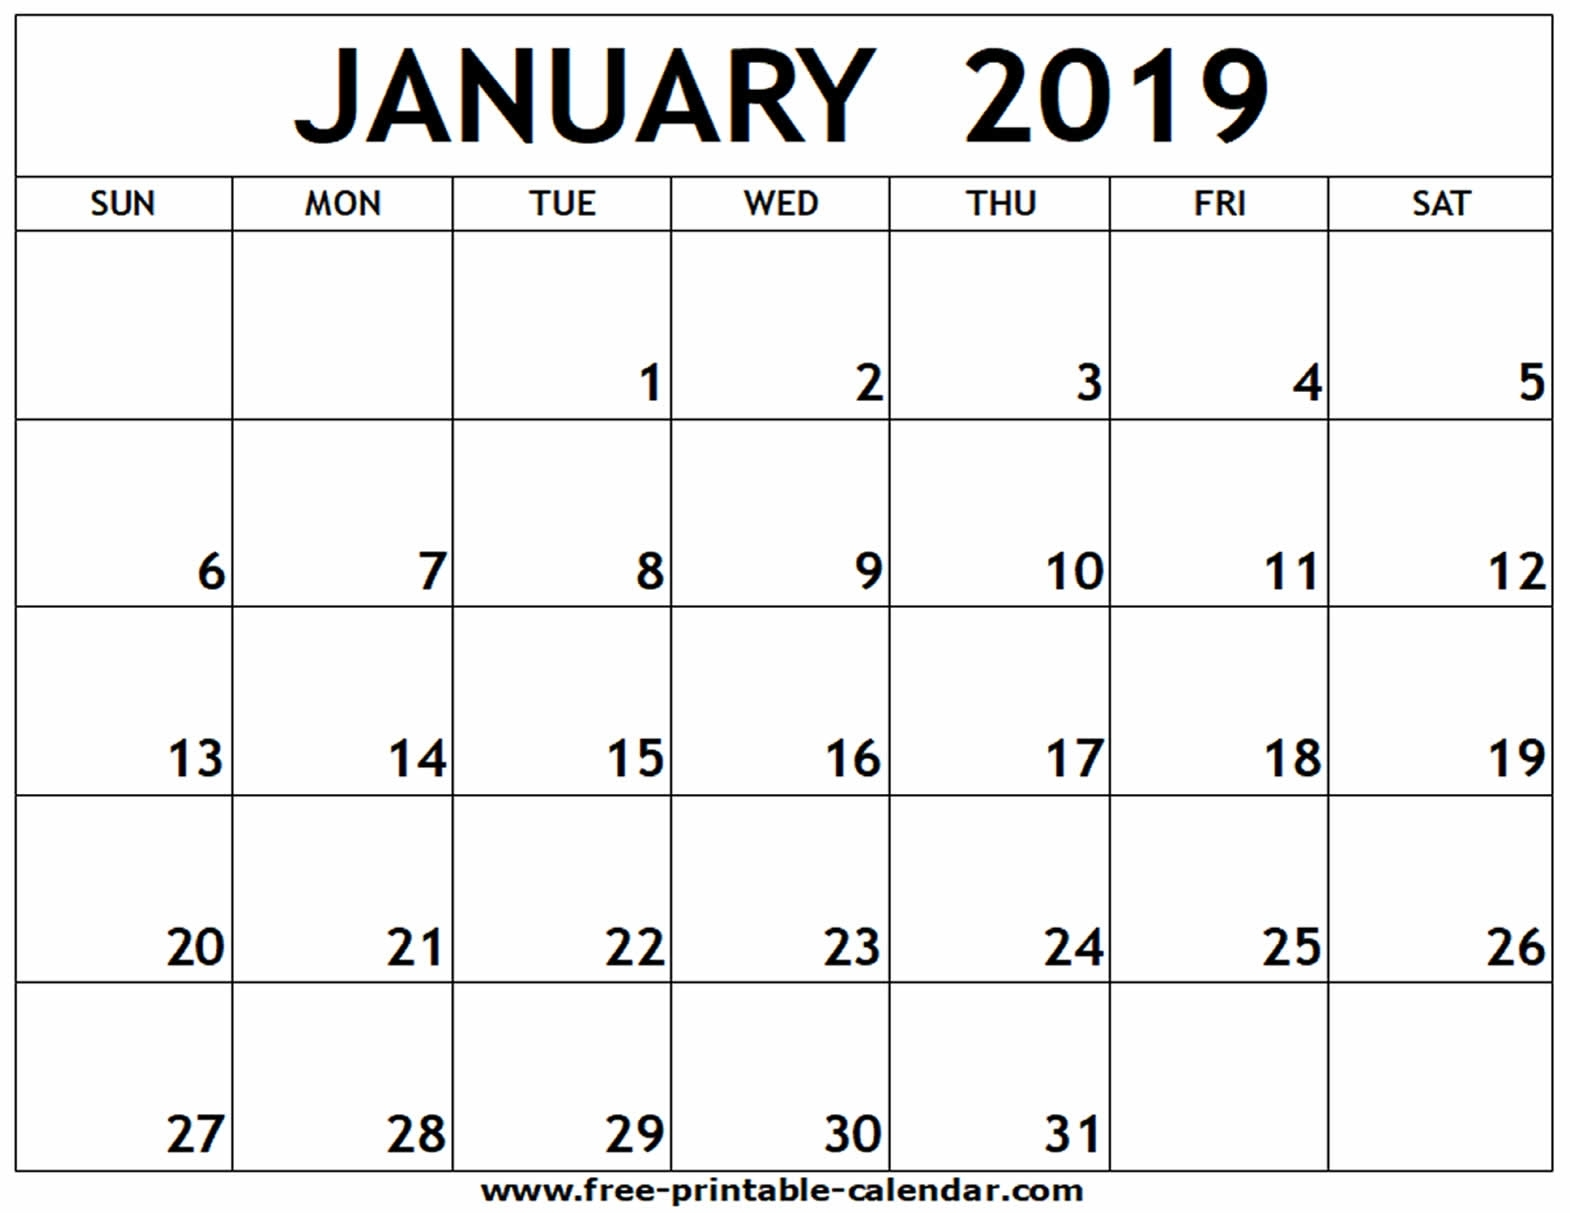 January 2019 Printable Calendar - Free-Printable-Calendar within Picture Of A January Calender